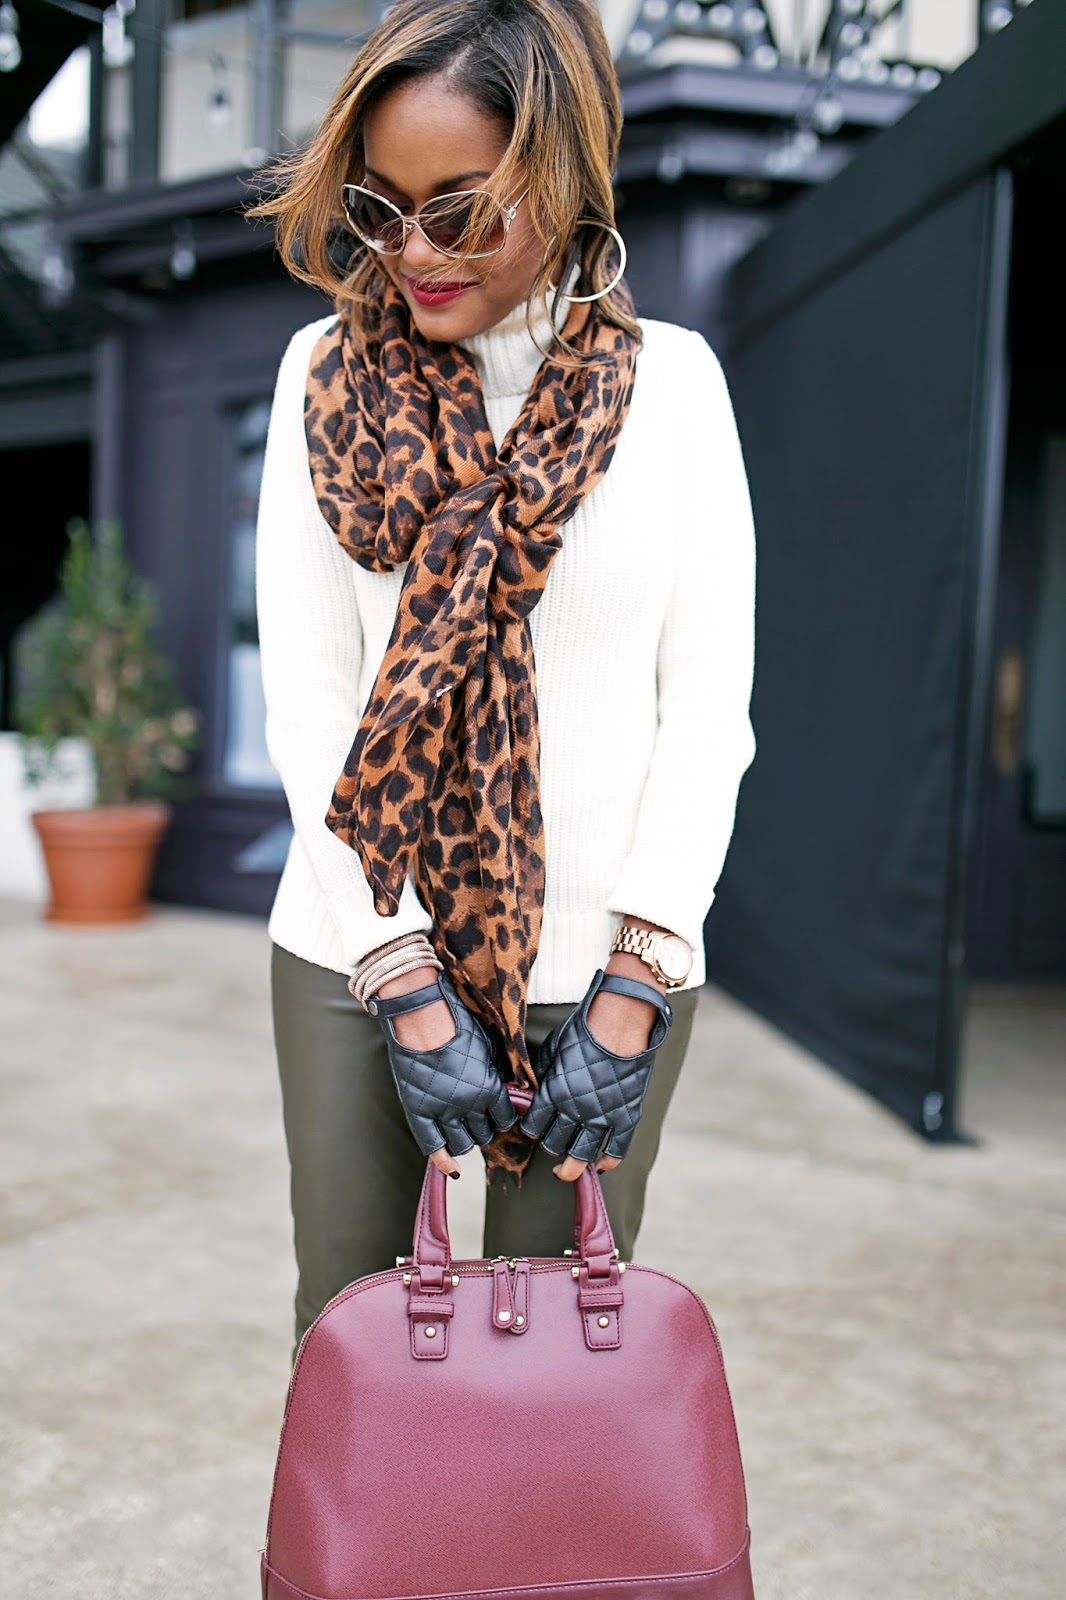 fall fashion trend, olive trend, dallas blogger, black girl blogger, fashion blogger, leopard scarf, how to wear leather leggings, how to wear leopard print, statement bag, detroit fashion blogger, dallas fashion, trinity groves